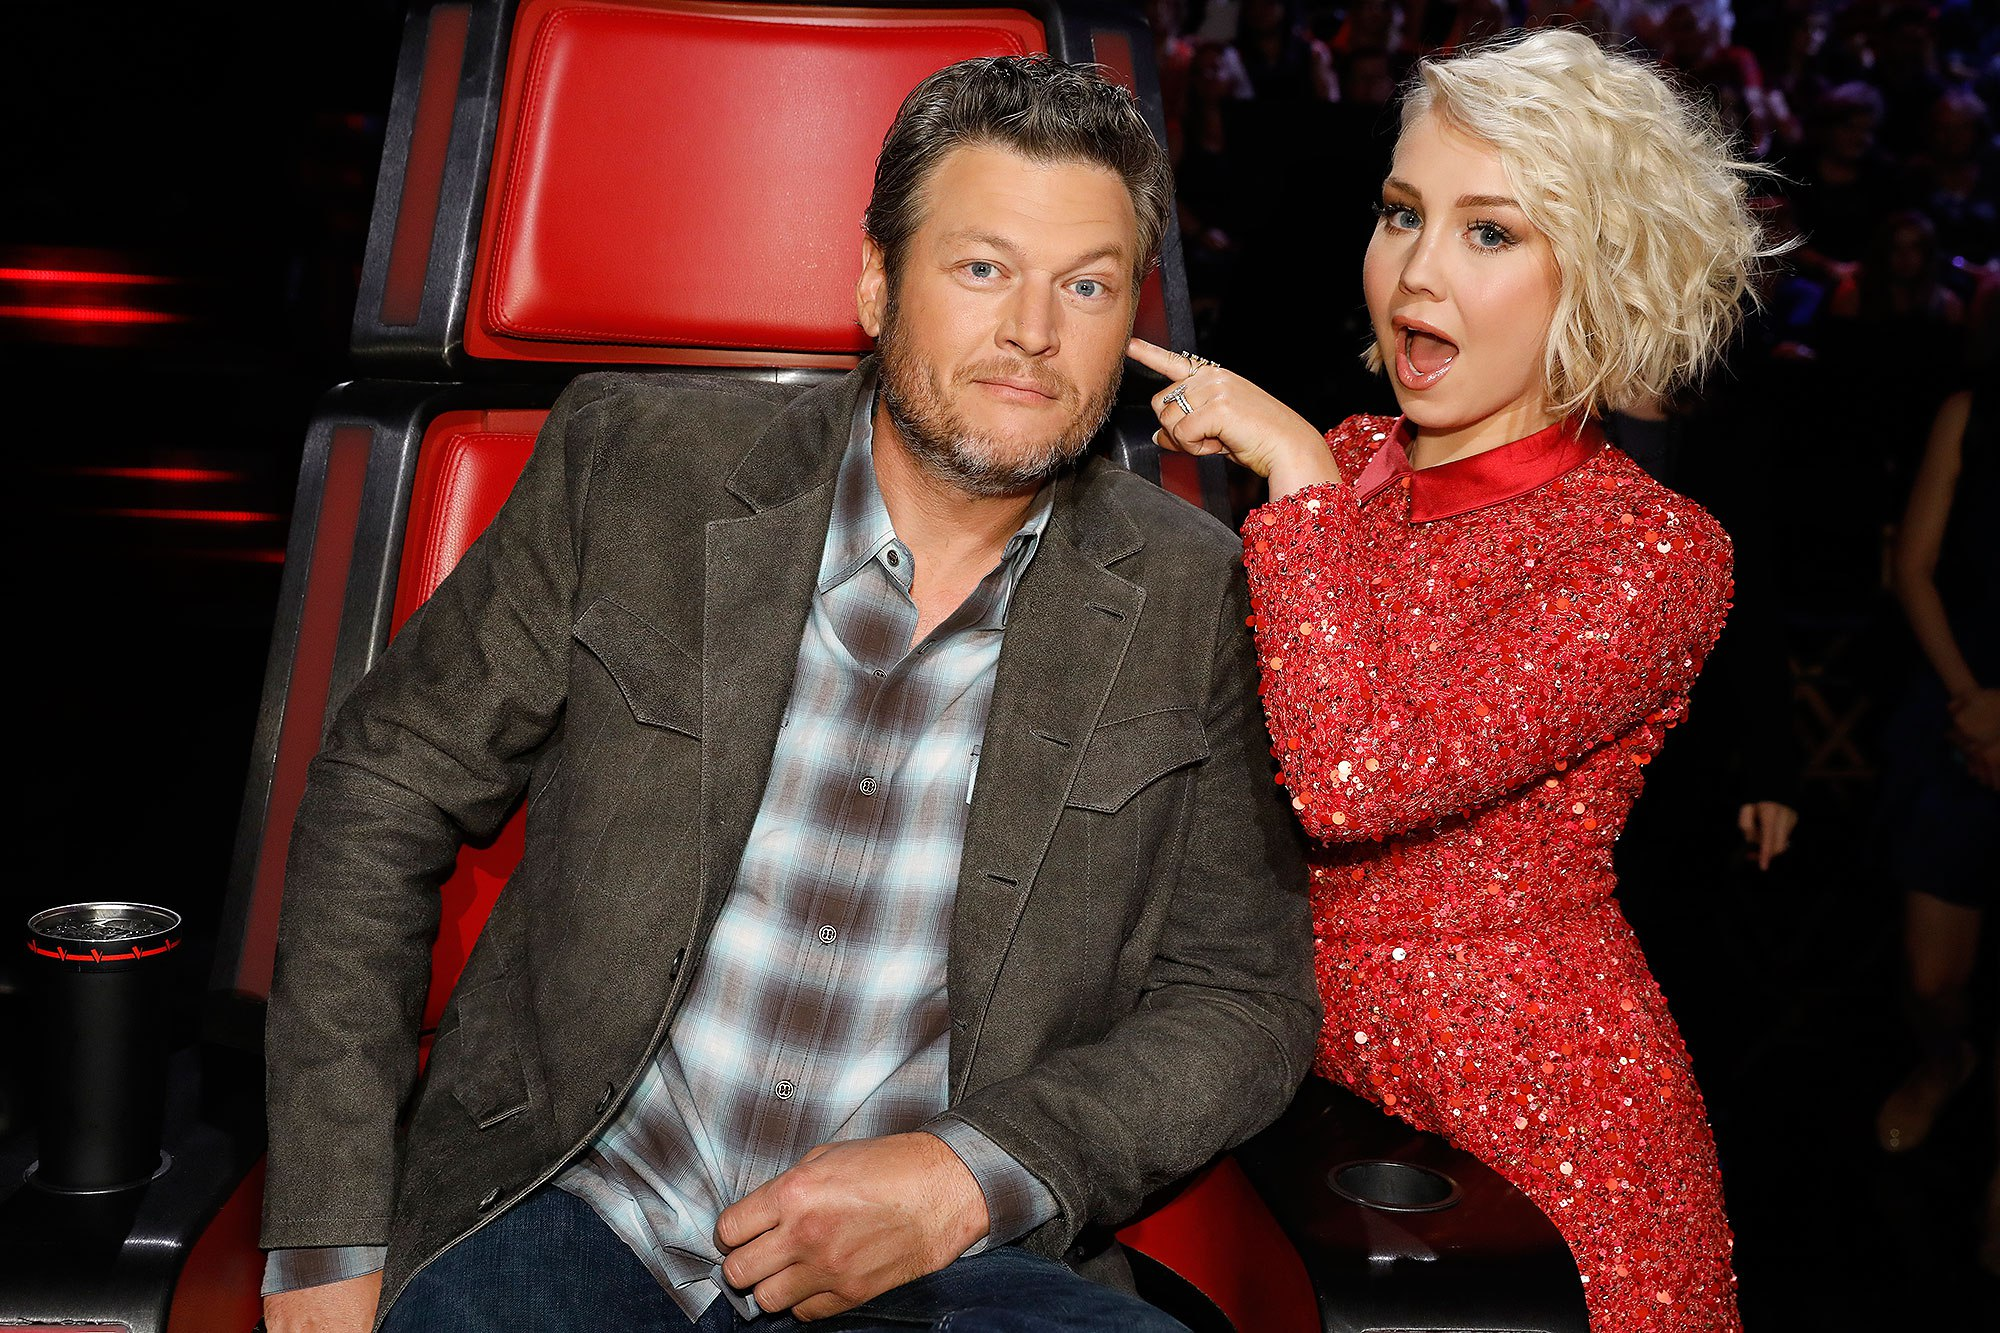 Blake Shelton and RaeLynn